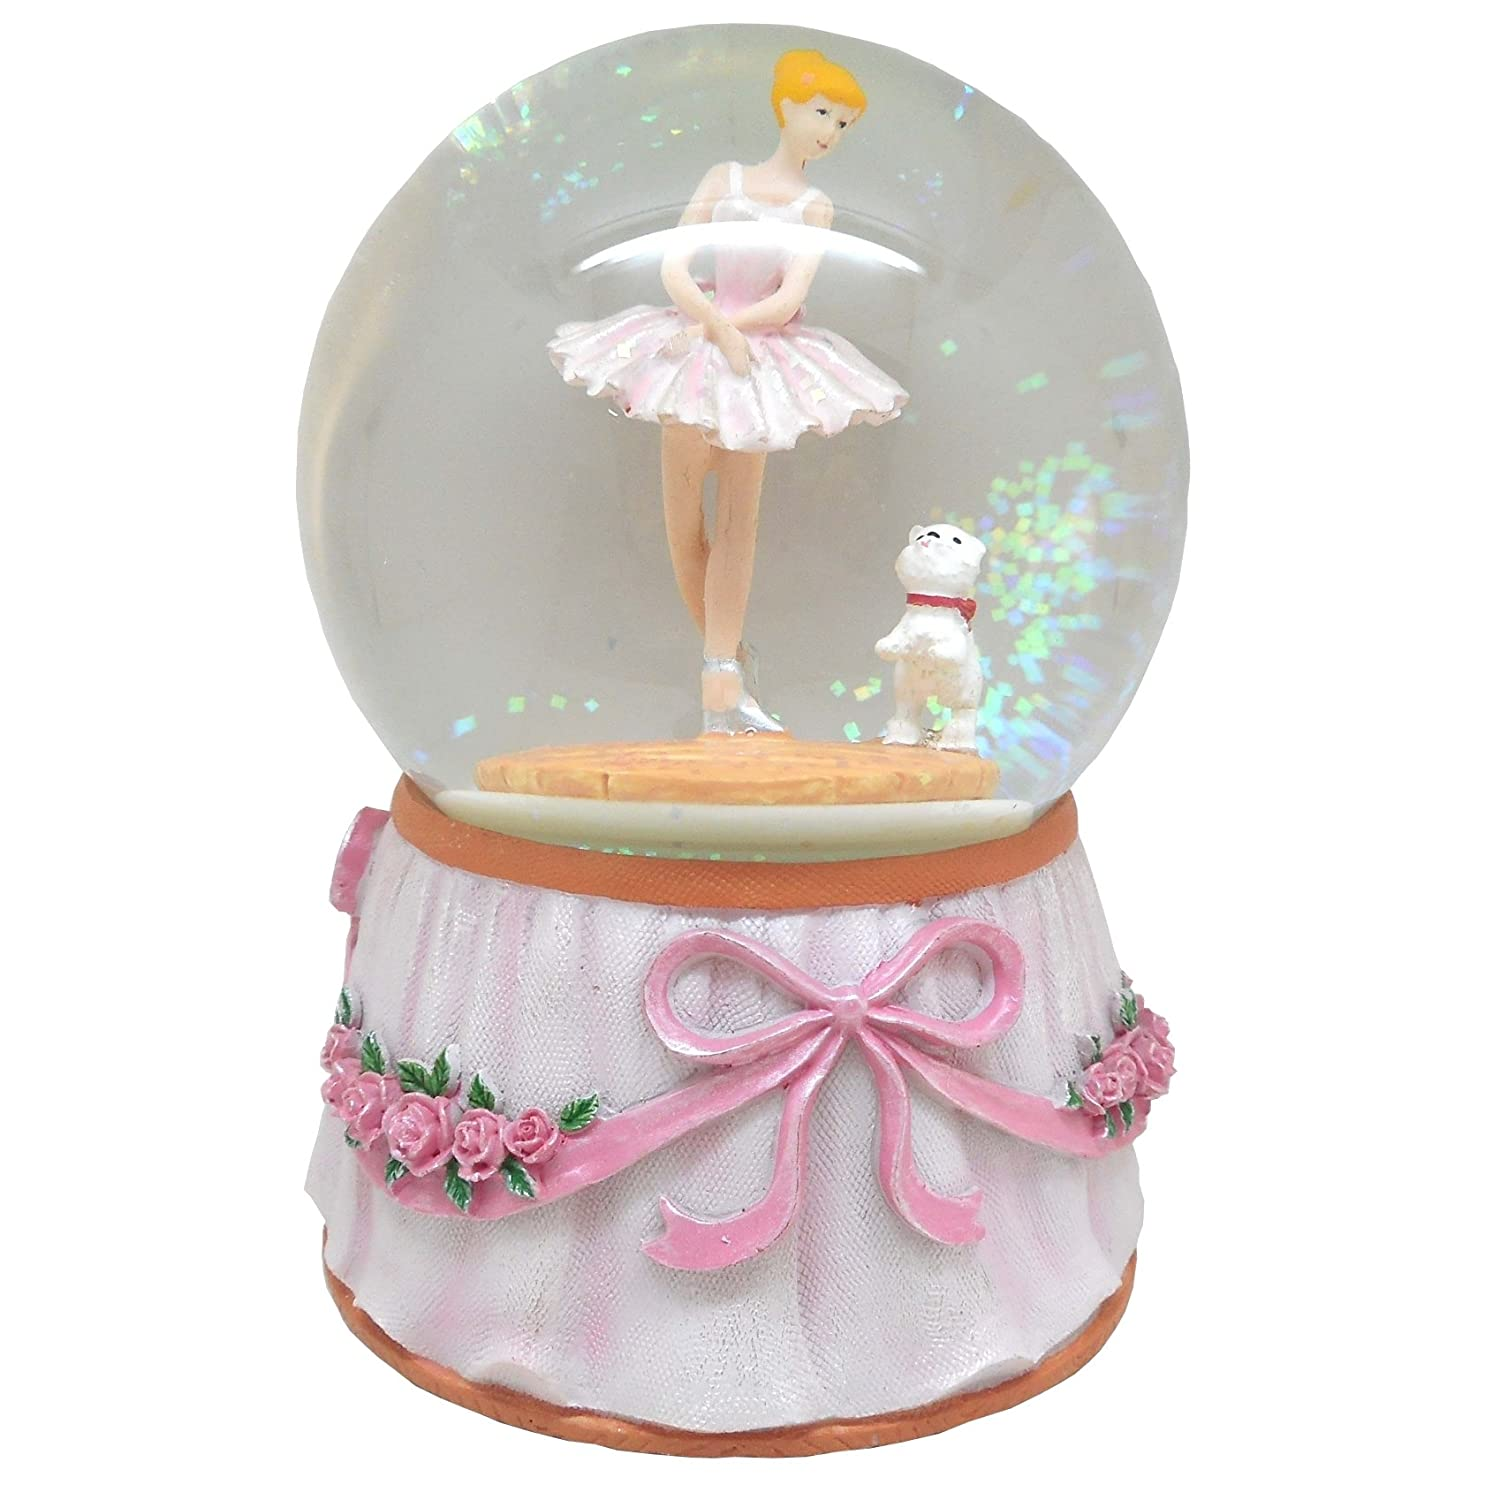 Lightahead Musical Ballerina with Puppy in a 100MM Polyresin Water Snow Globe Ball with Inside Figurine Rotating playing music